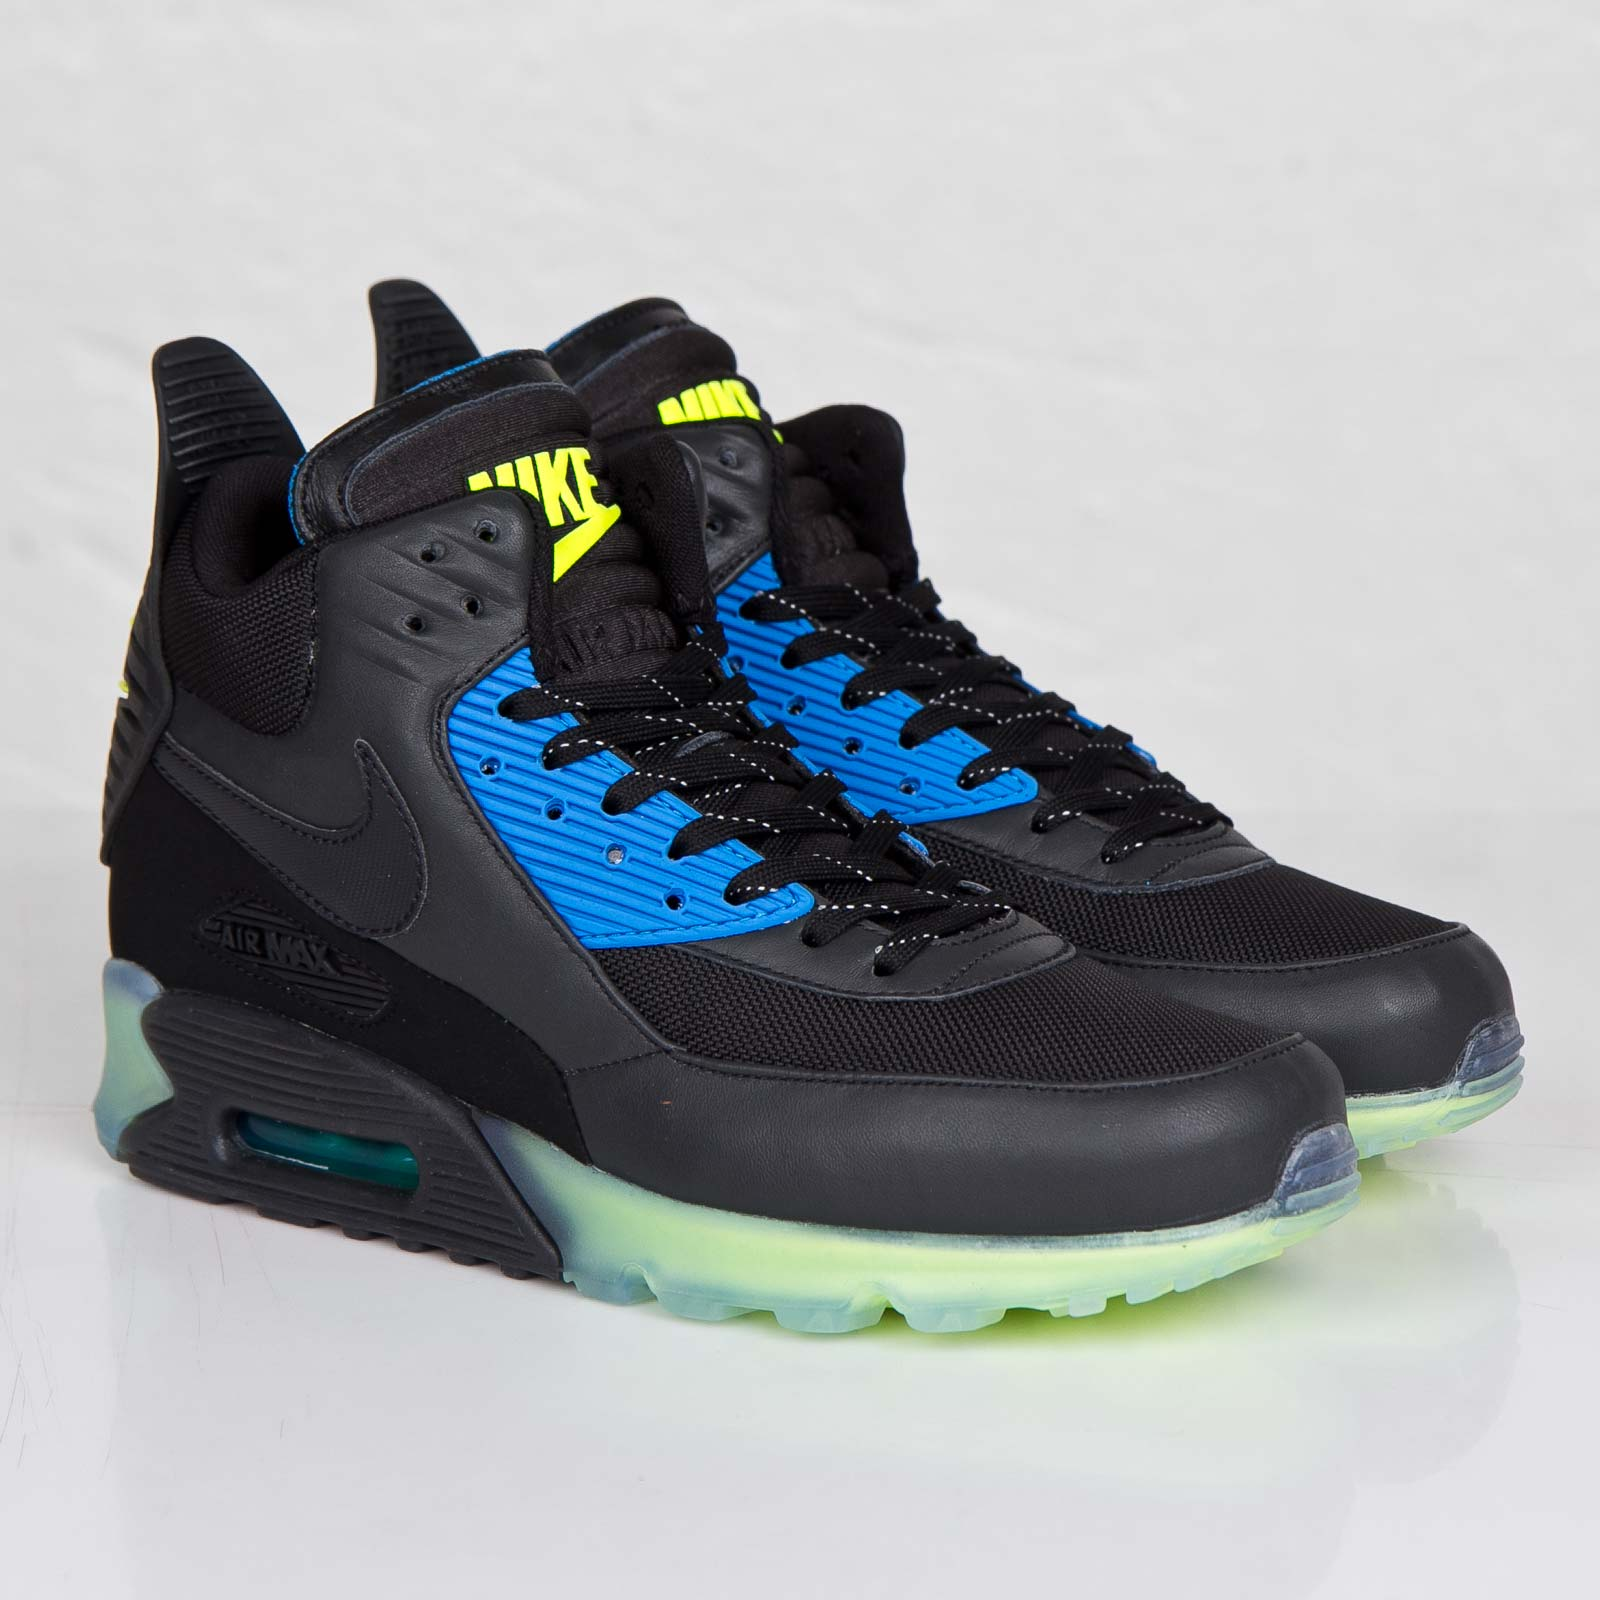 Nike Air Max 90 Sneakerboot Ice 684722 001